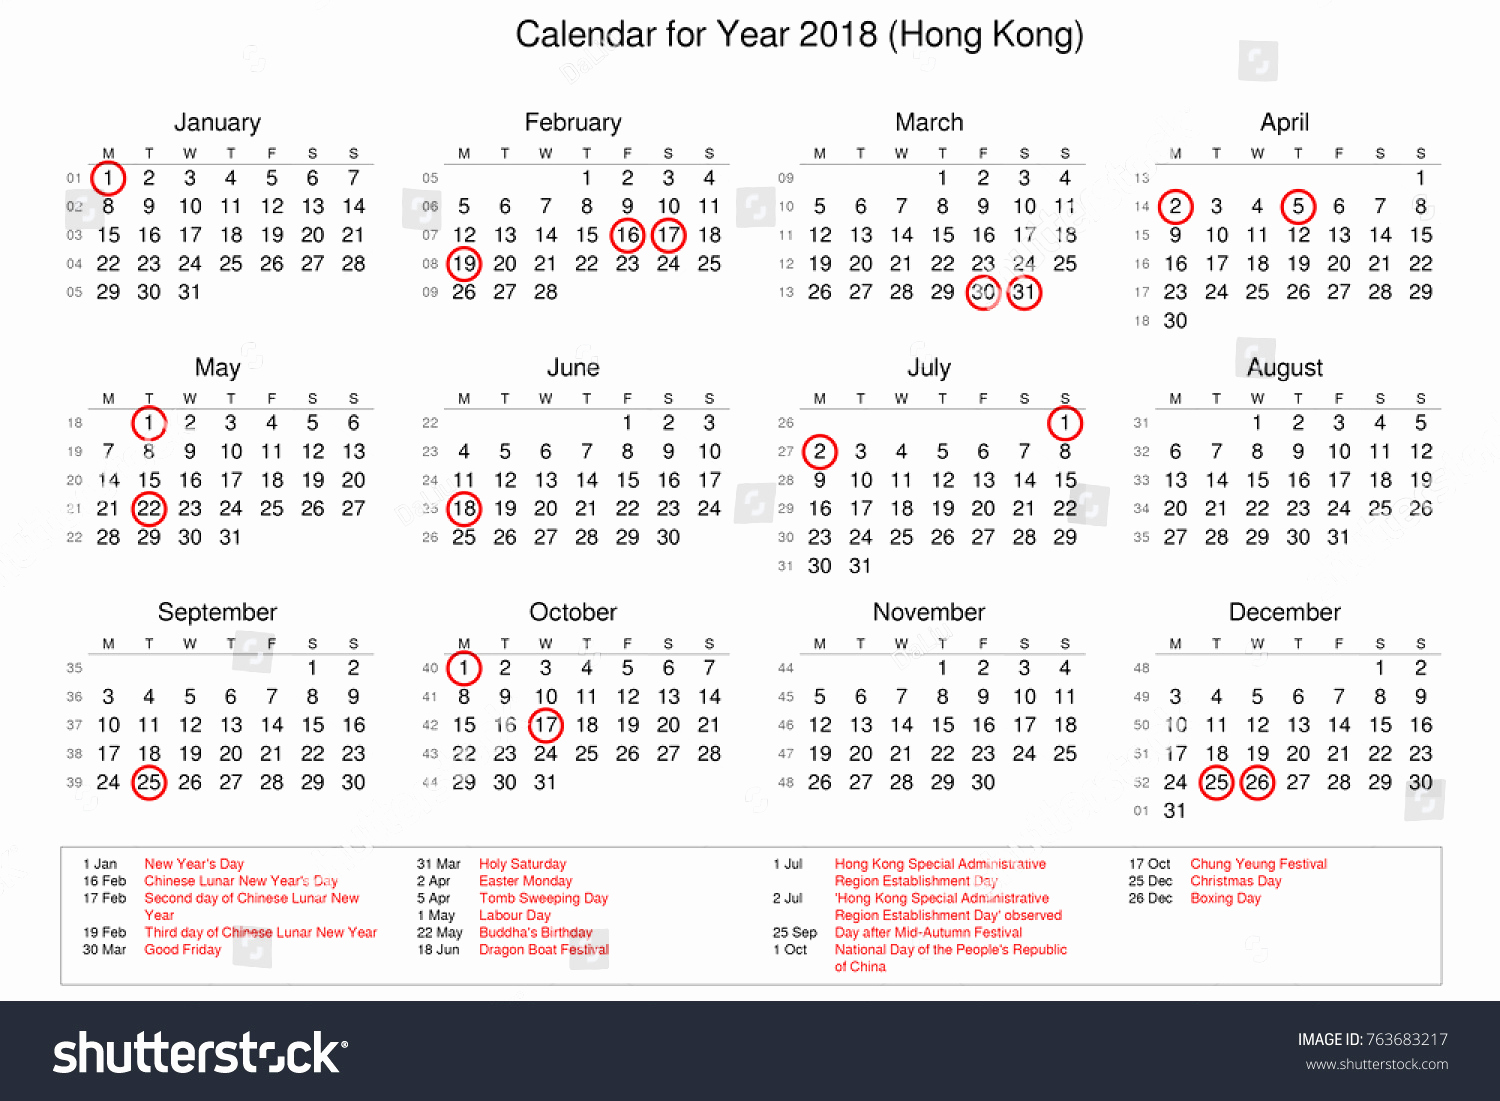 New Year Calendar 2019 With Holidays Elegant 37 Examples Hk Abohmza Com